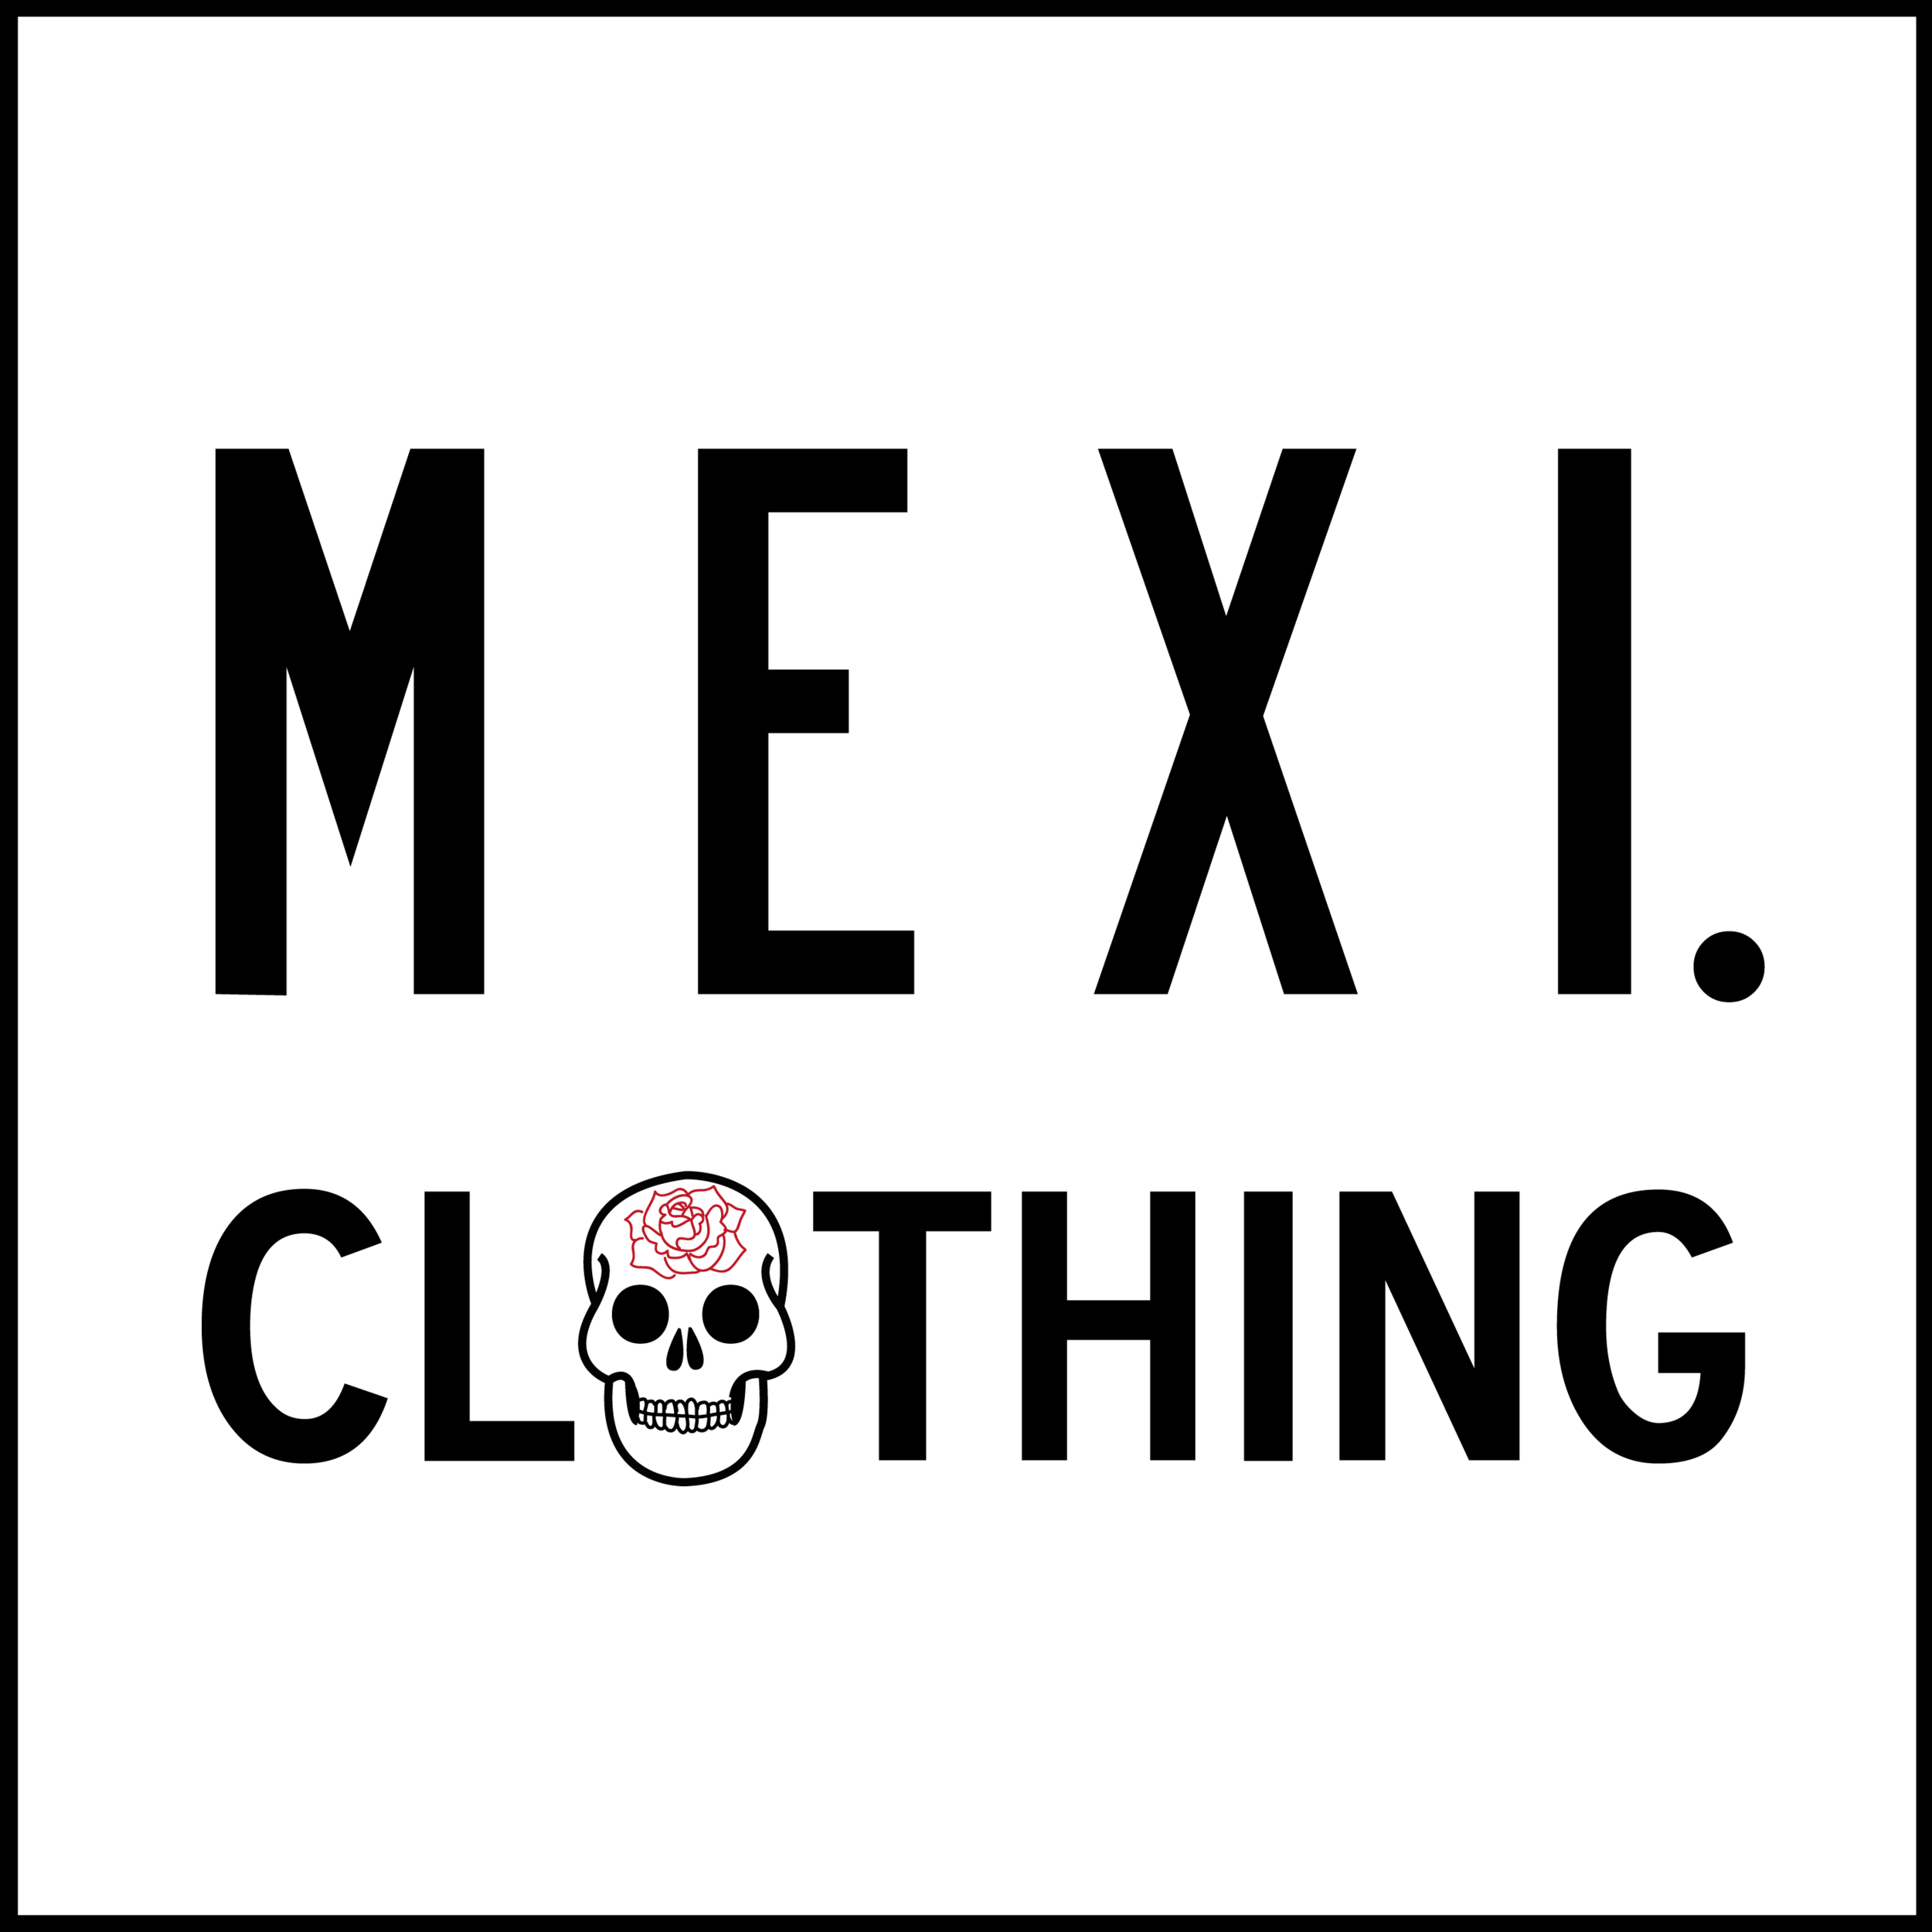 Mexican fashion